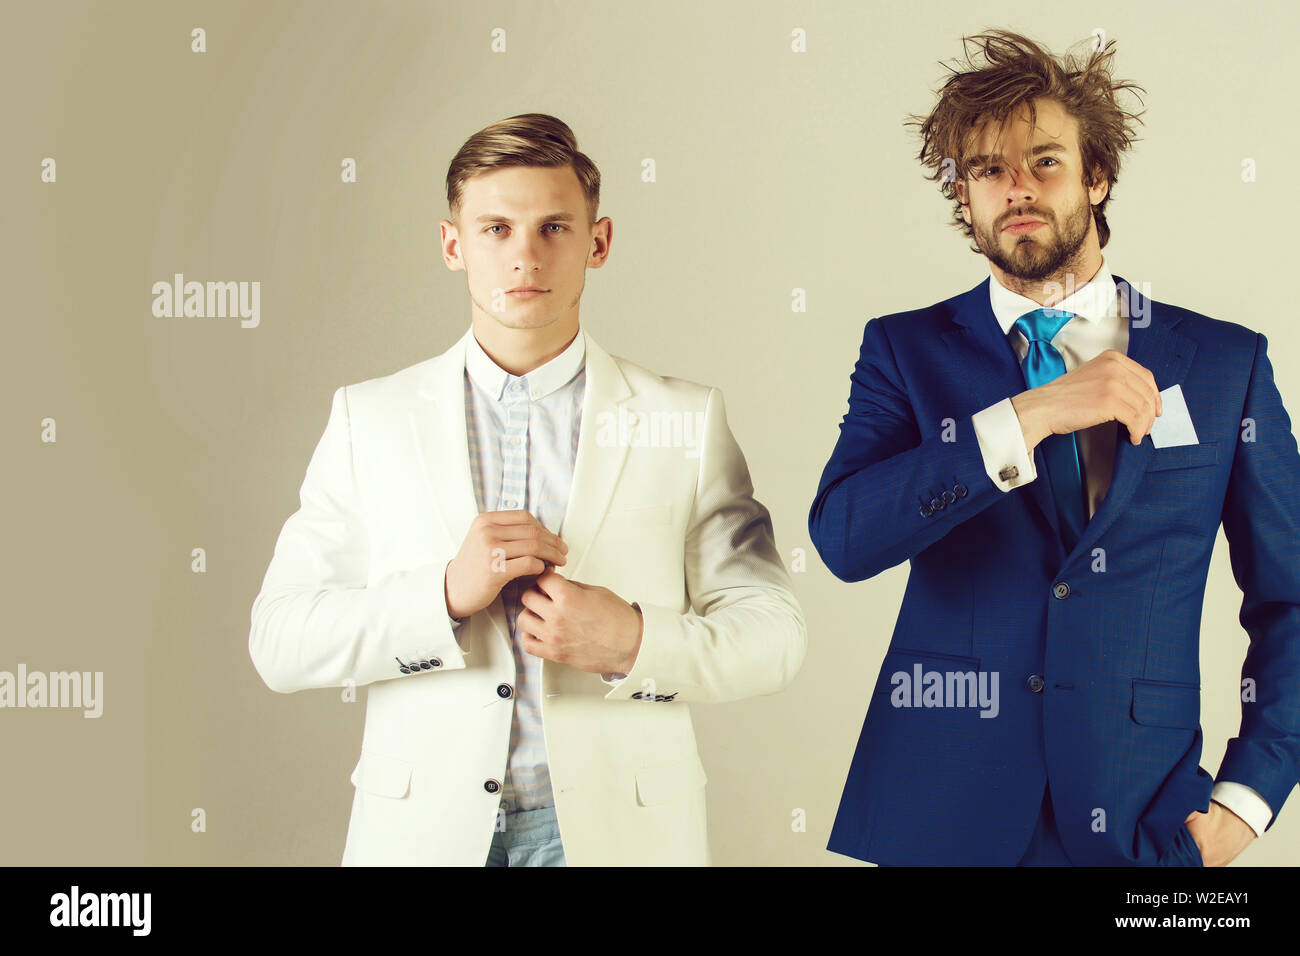 Two businessmen standing on grey background. Man with shaven face wearing white jacket. Macho with beard putting card in pocket. Business ethics and i - Stock Image